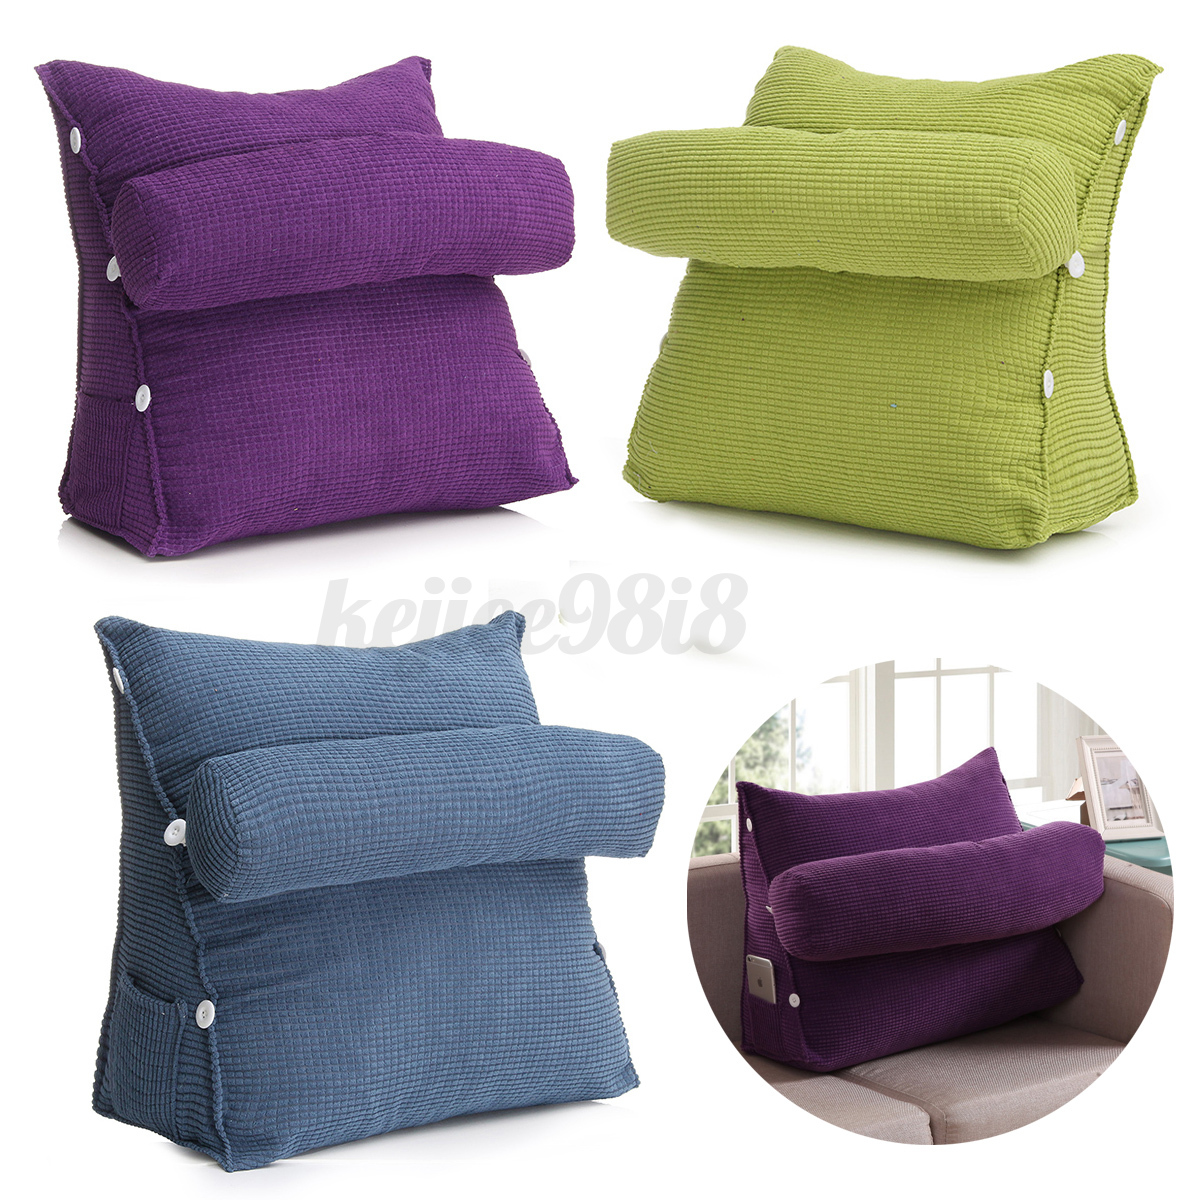 chair pillows for bed kneeling staples canada adjustable back wedge cushion pillow sofa office